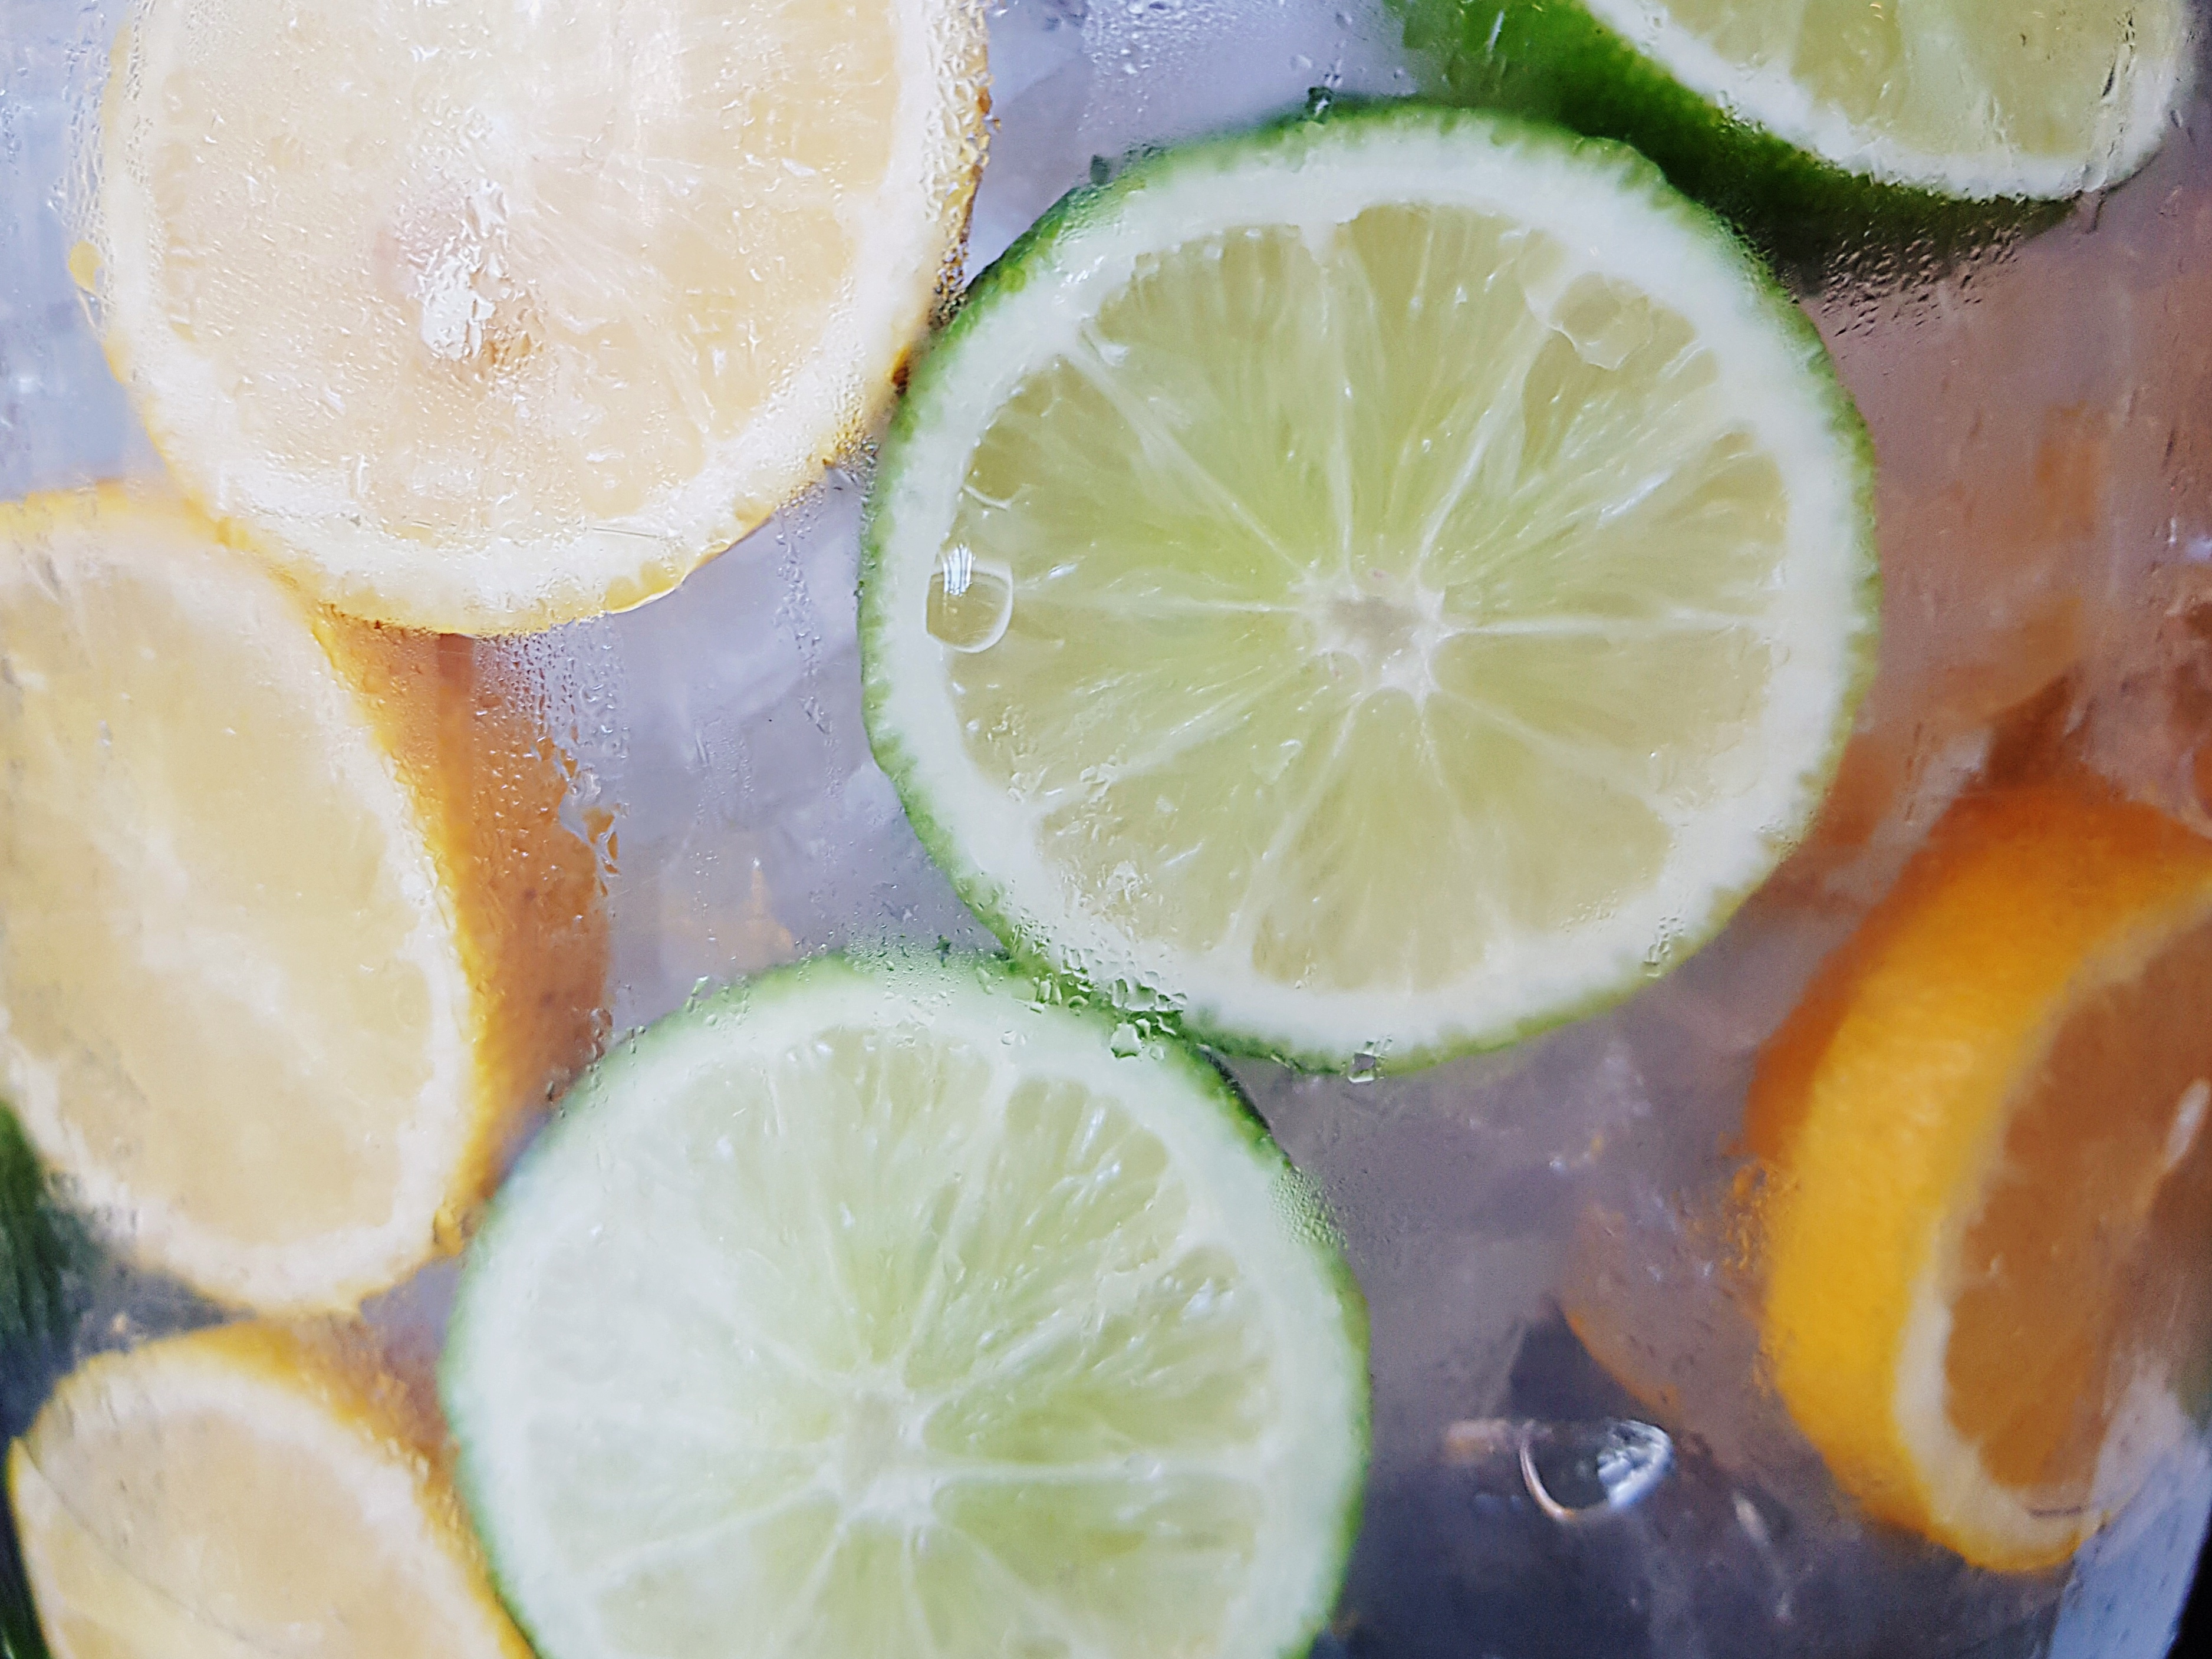 Frozen lemons and limes in a jar.